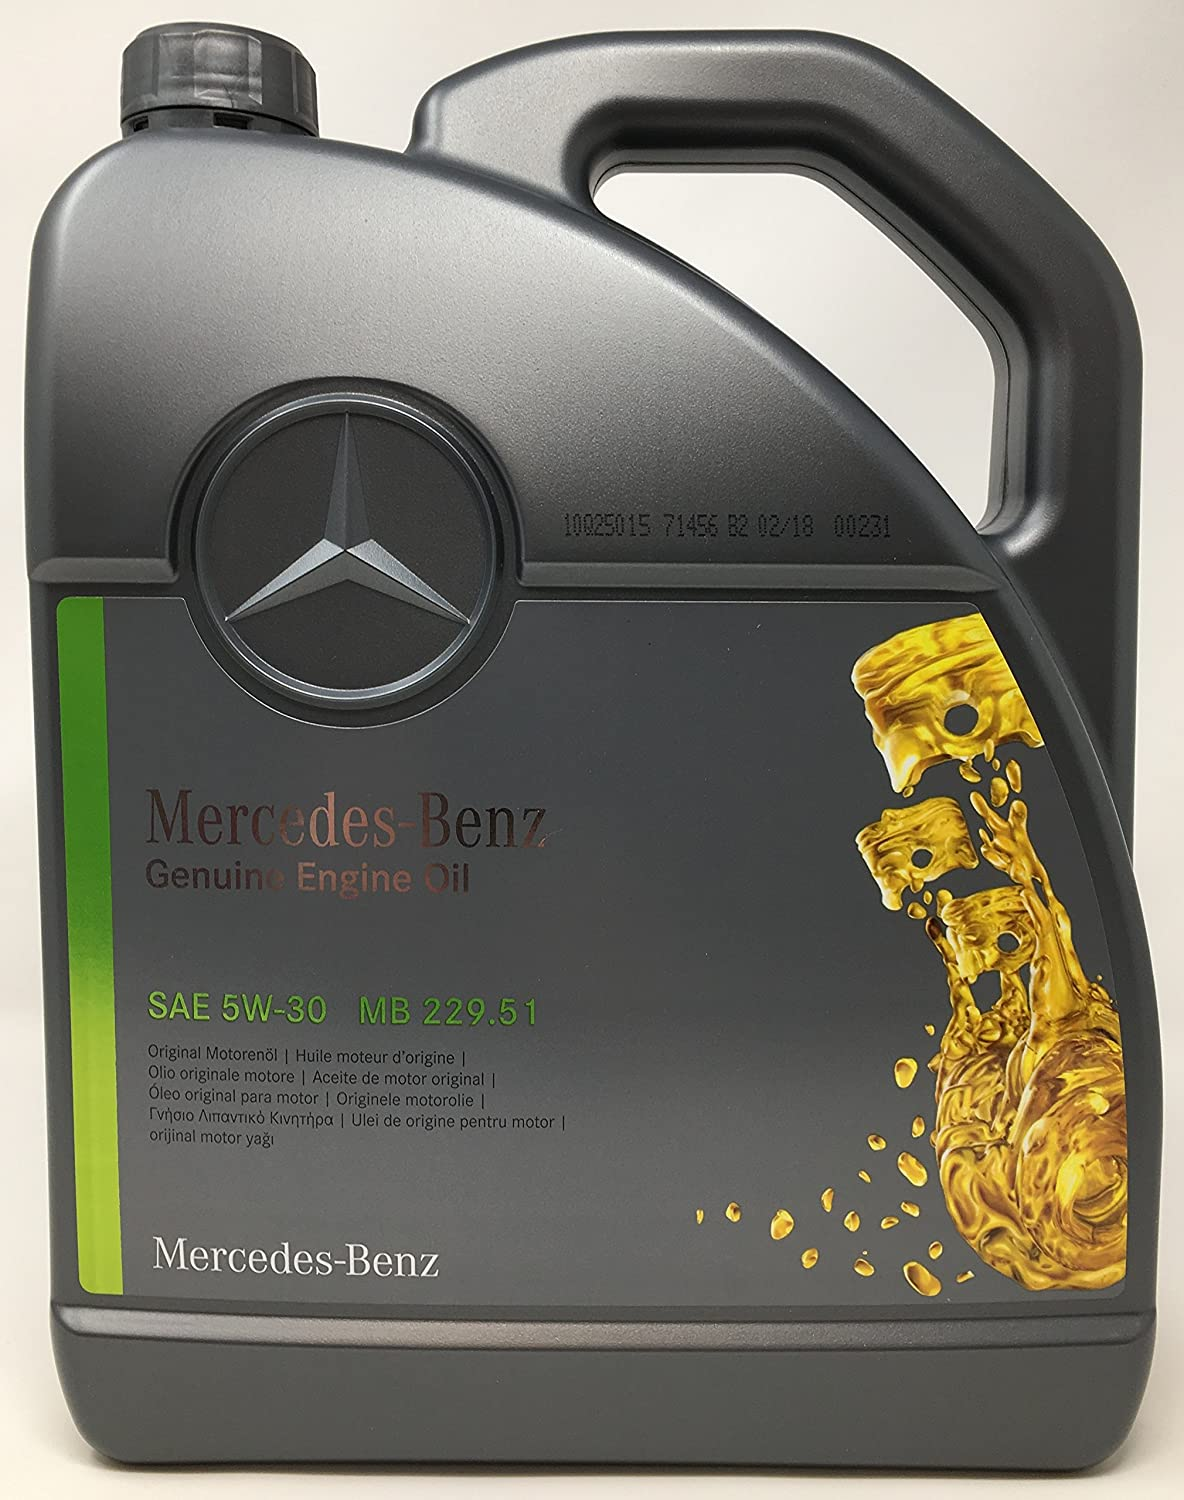 Mercedes-Benz Aceite de Motor Original 5W-30 MB 229,51 5 L: Amazon ...